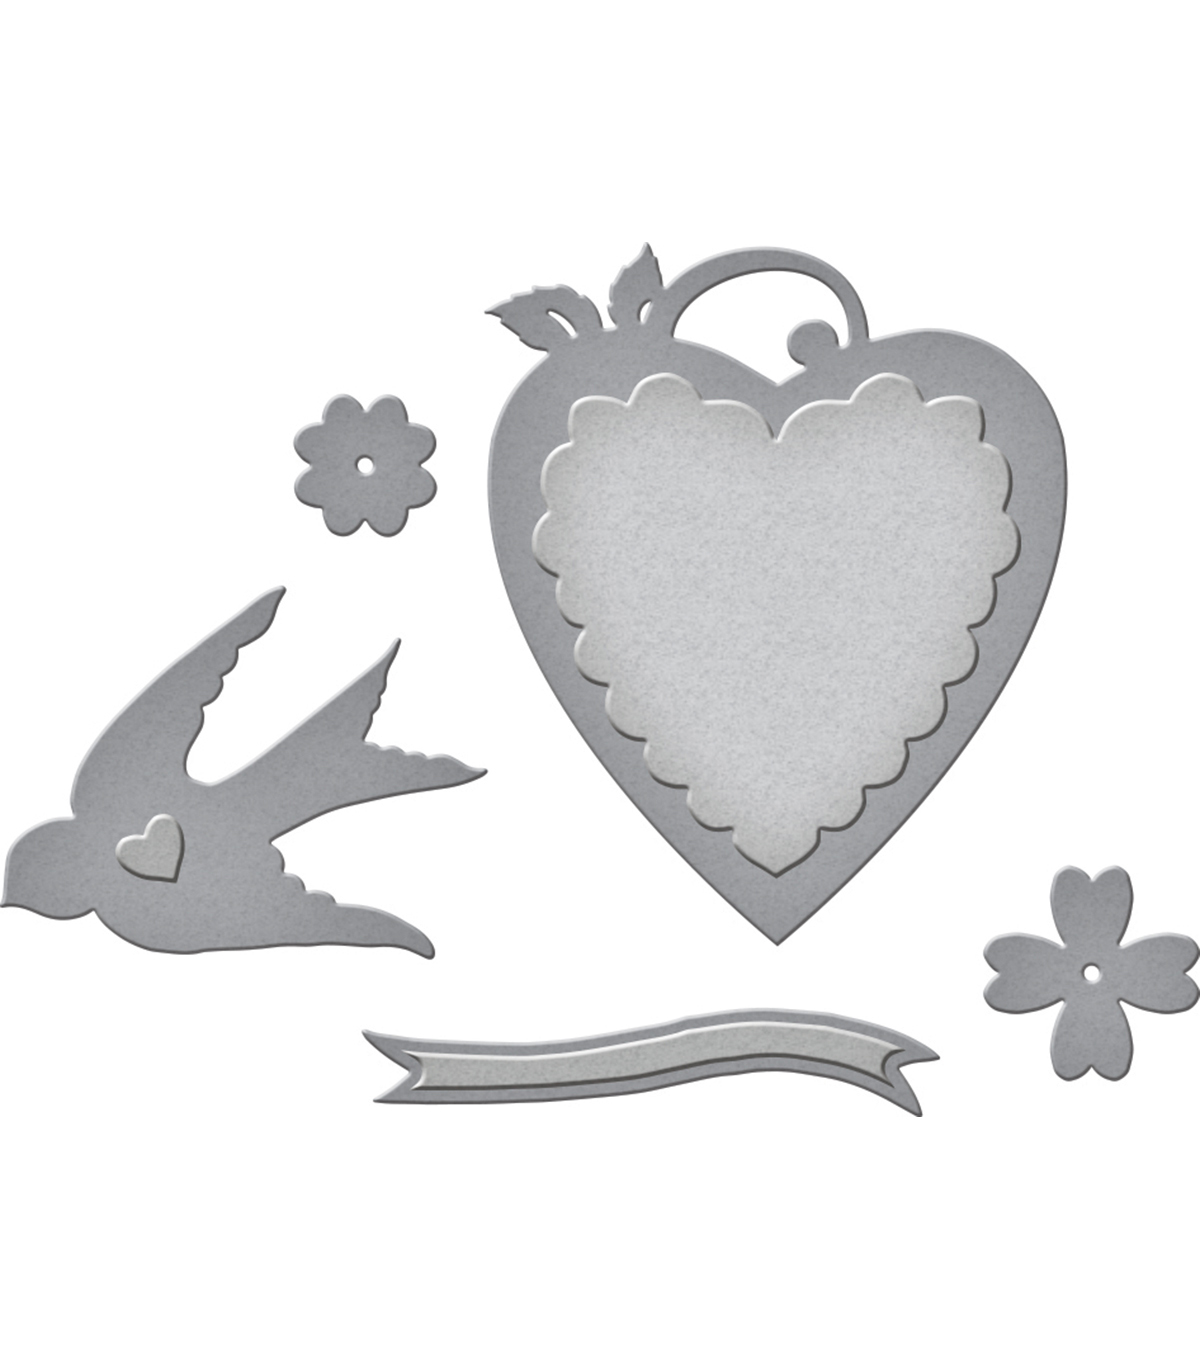 Spellbinders Shapeabilities Etched Die-Swallow & Heart